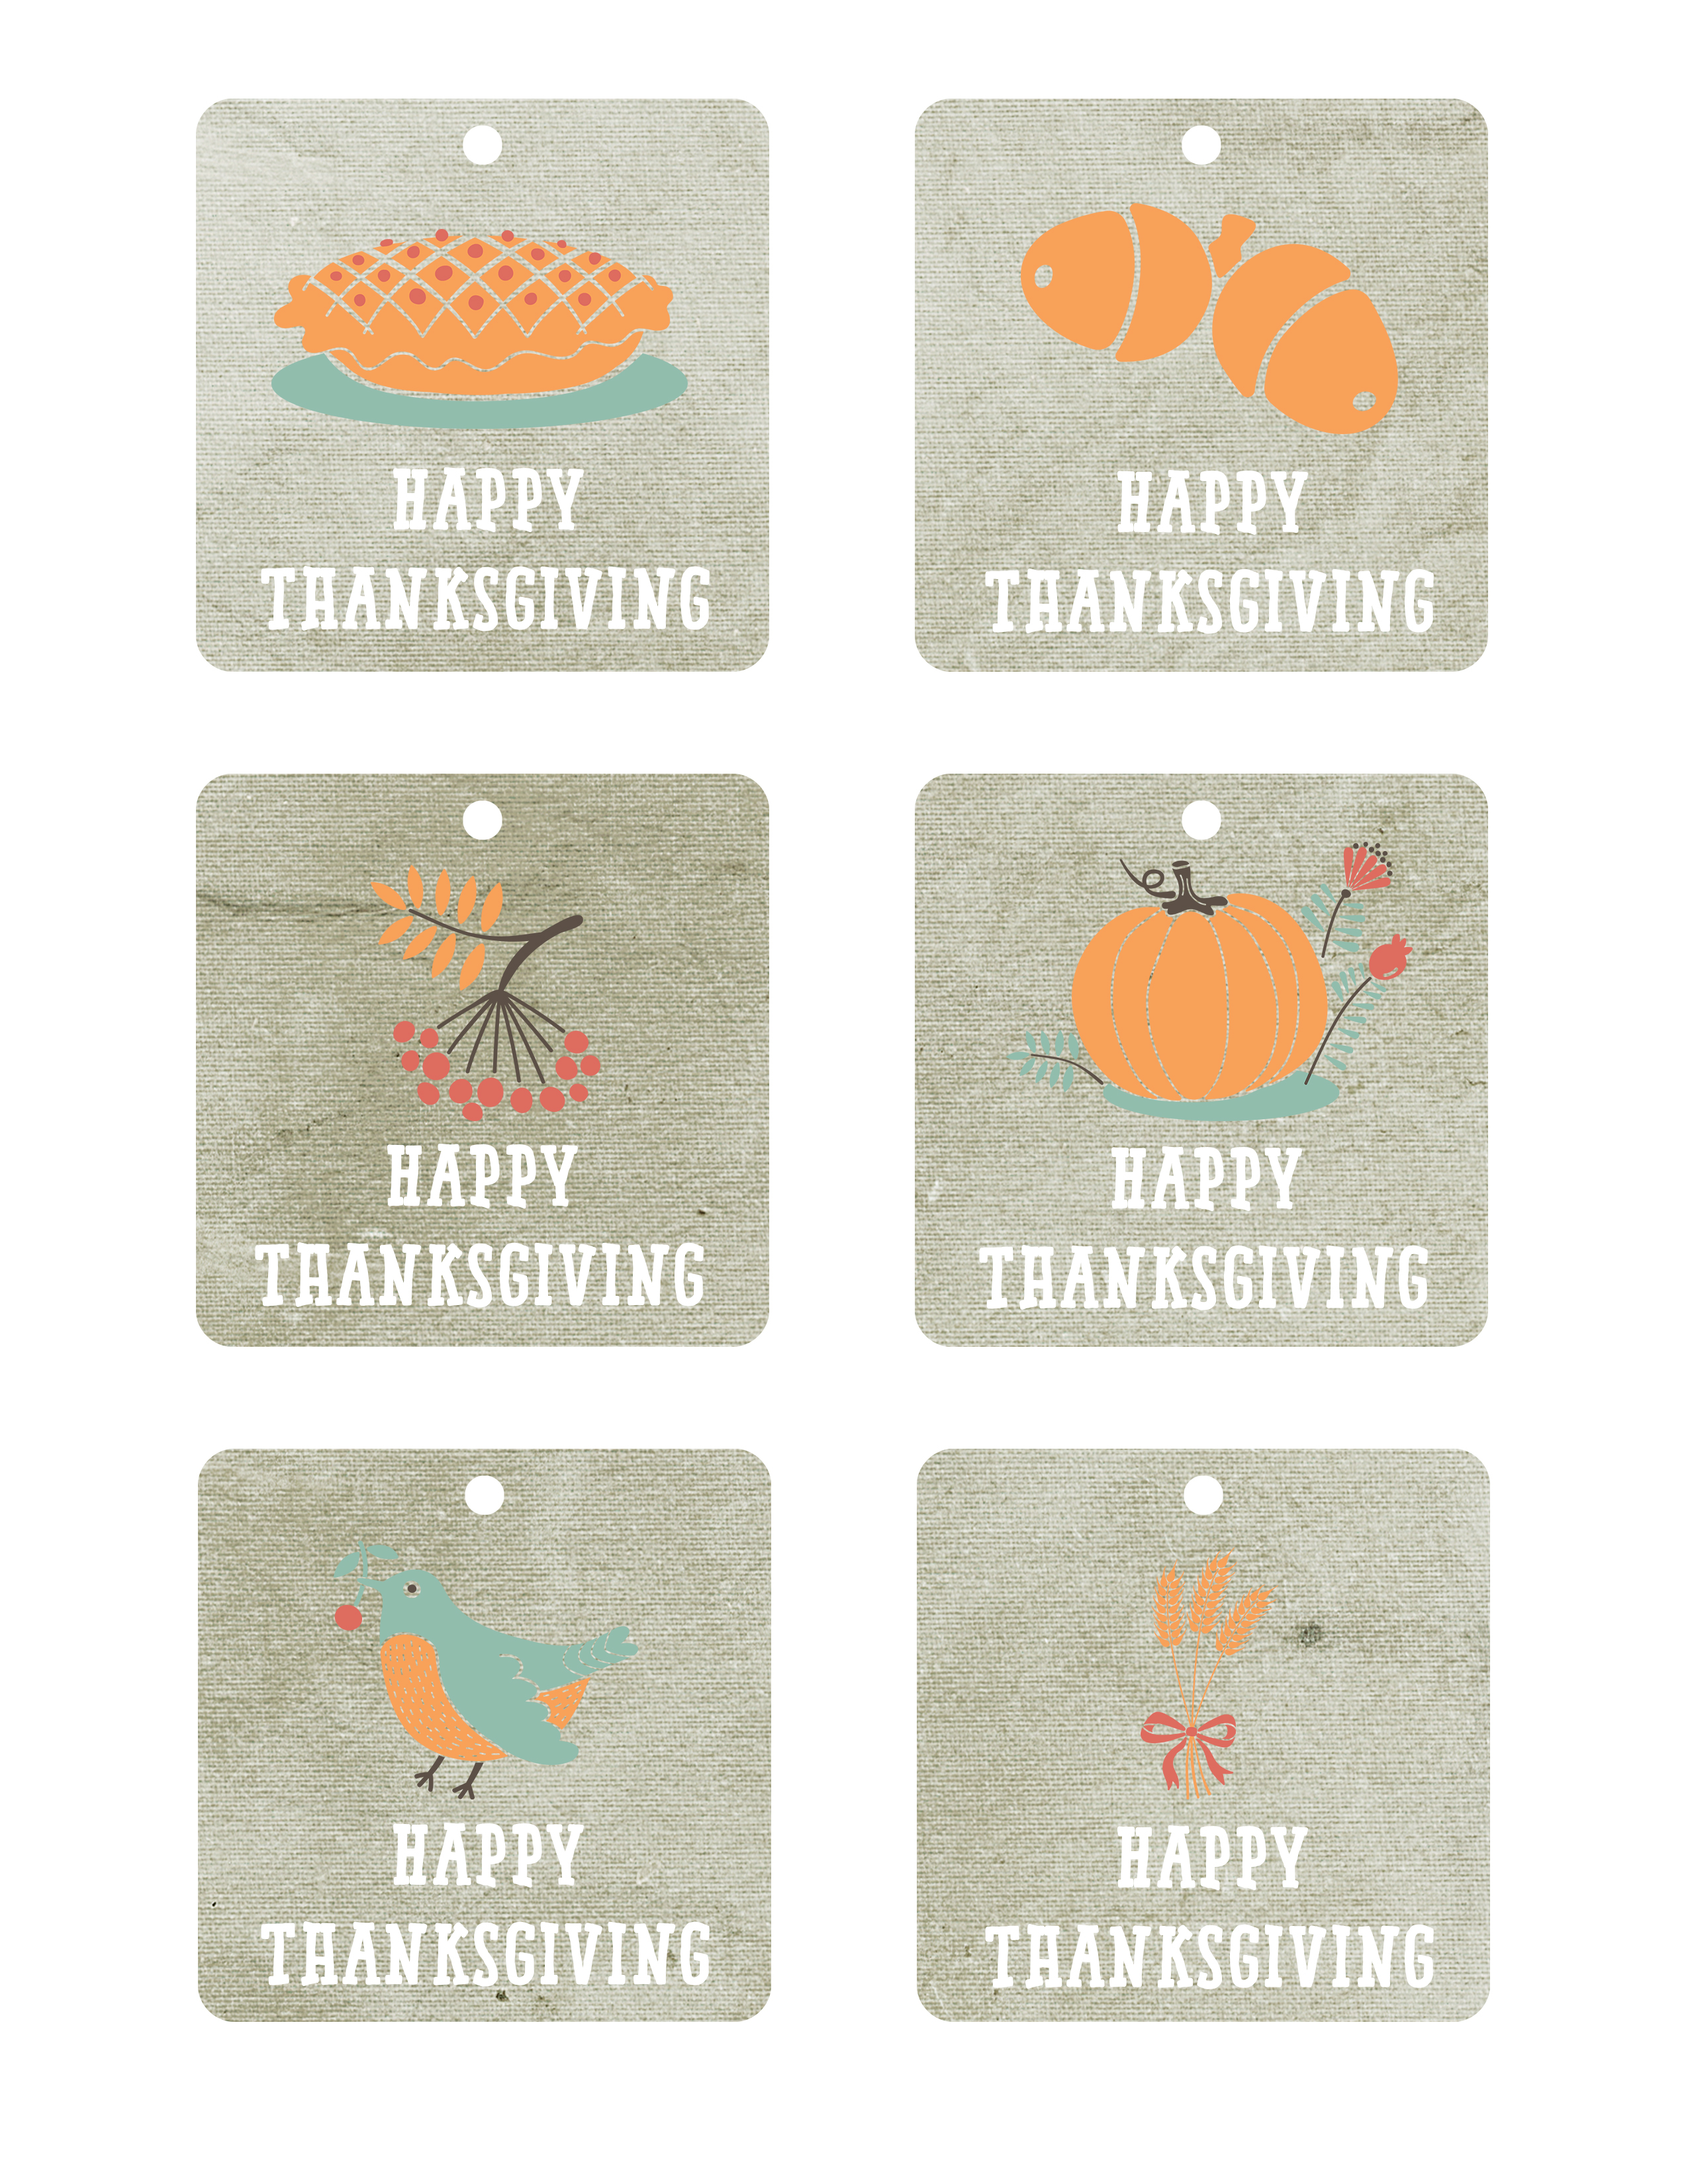 photograph regarding Free Printable Thanksgiving Tags called Satisfied Thanksgiving No cost Printable Tags - The Graffical Muse